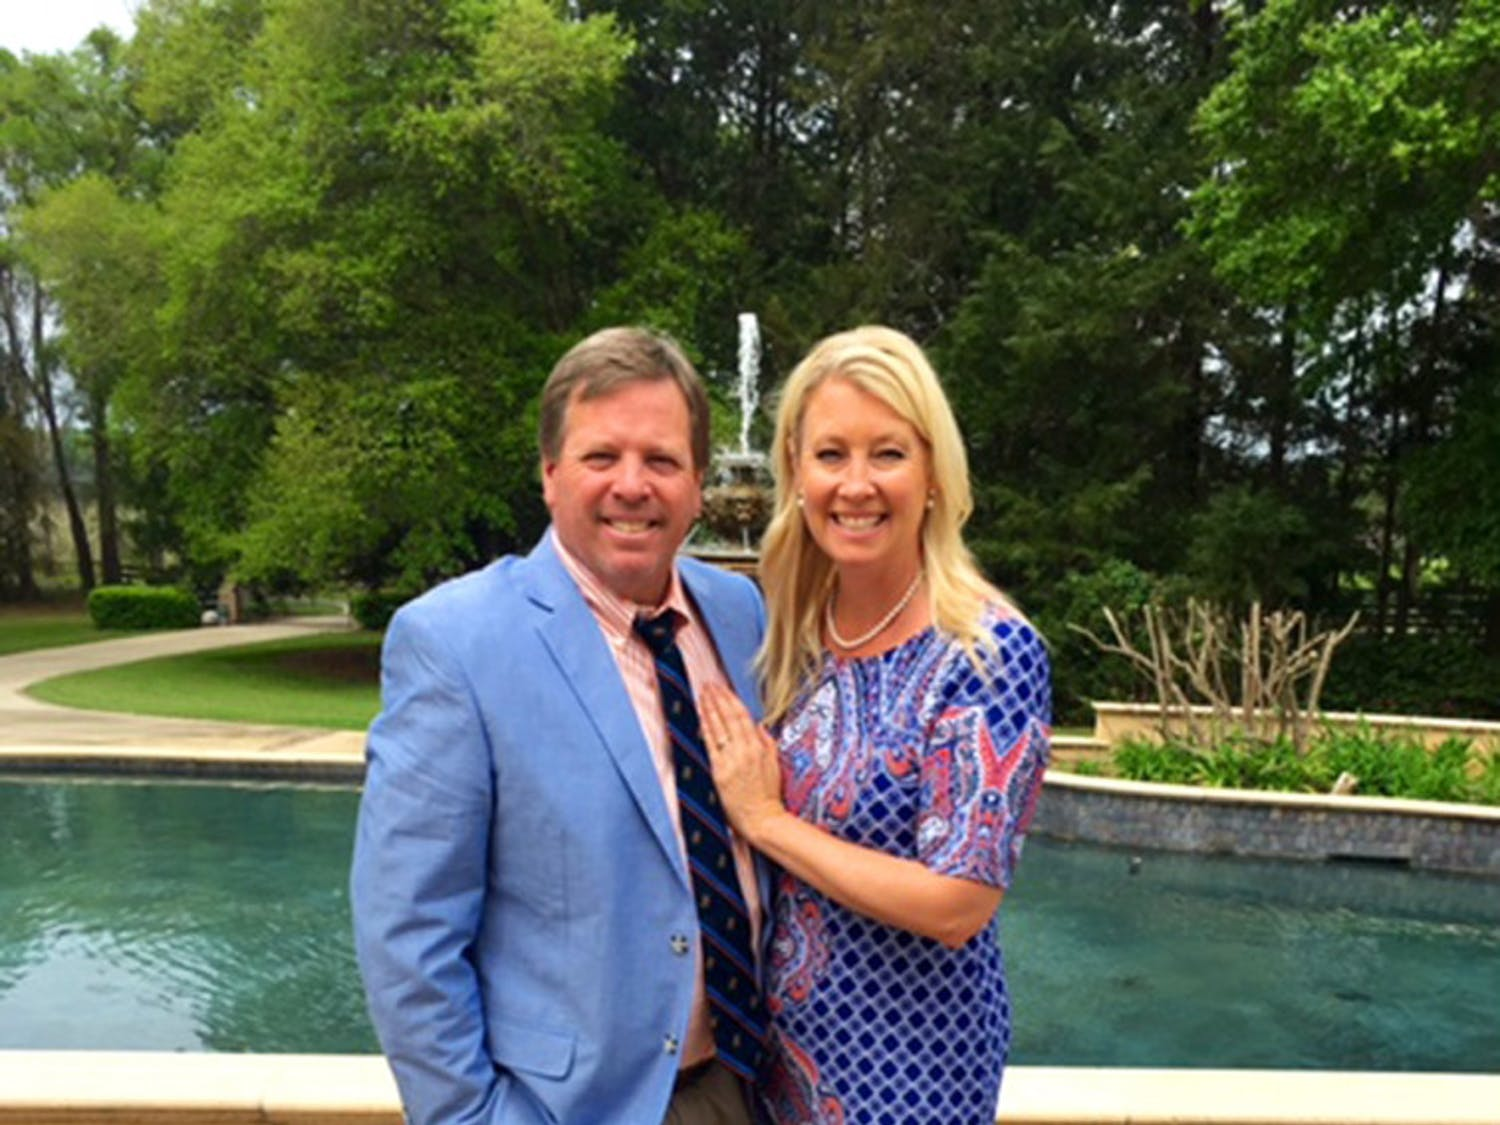 Coach Jim McElwain and Karen McElwain before attending Easter Sunday service last month. The McElwains have been in Gainesville for a year now, with a 10-4 regular season record in their first season with the Gators.